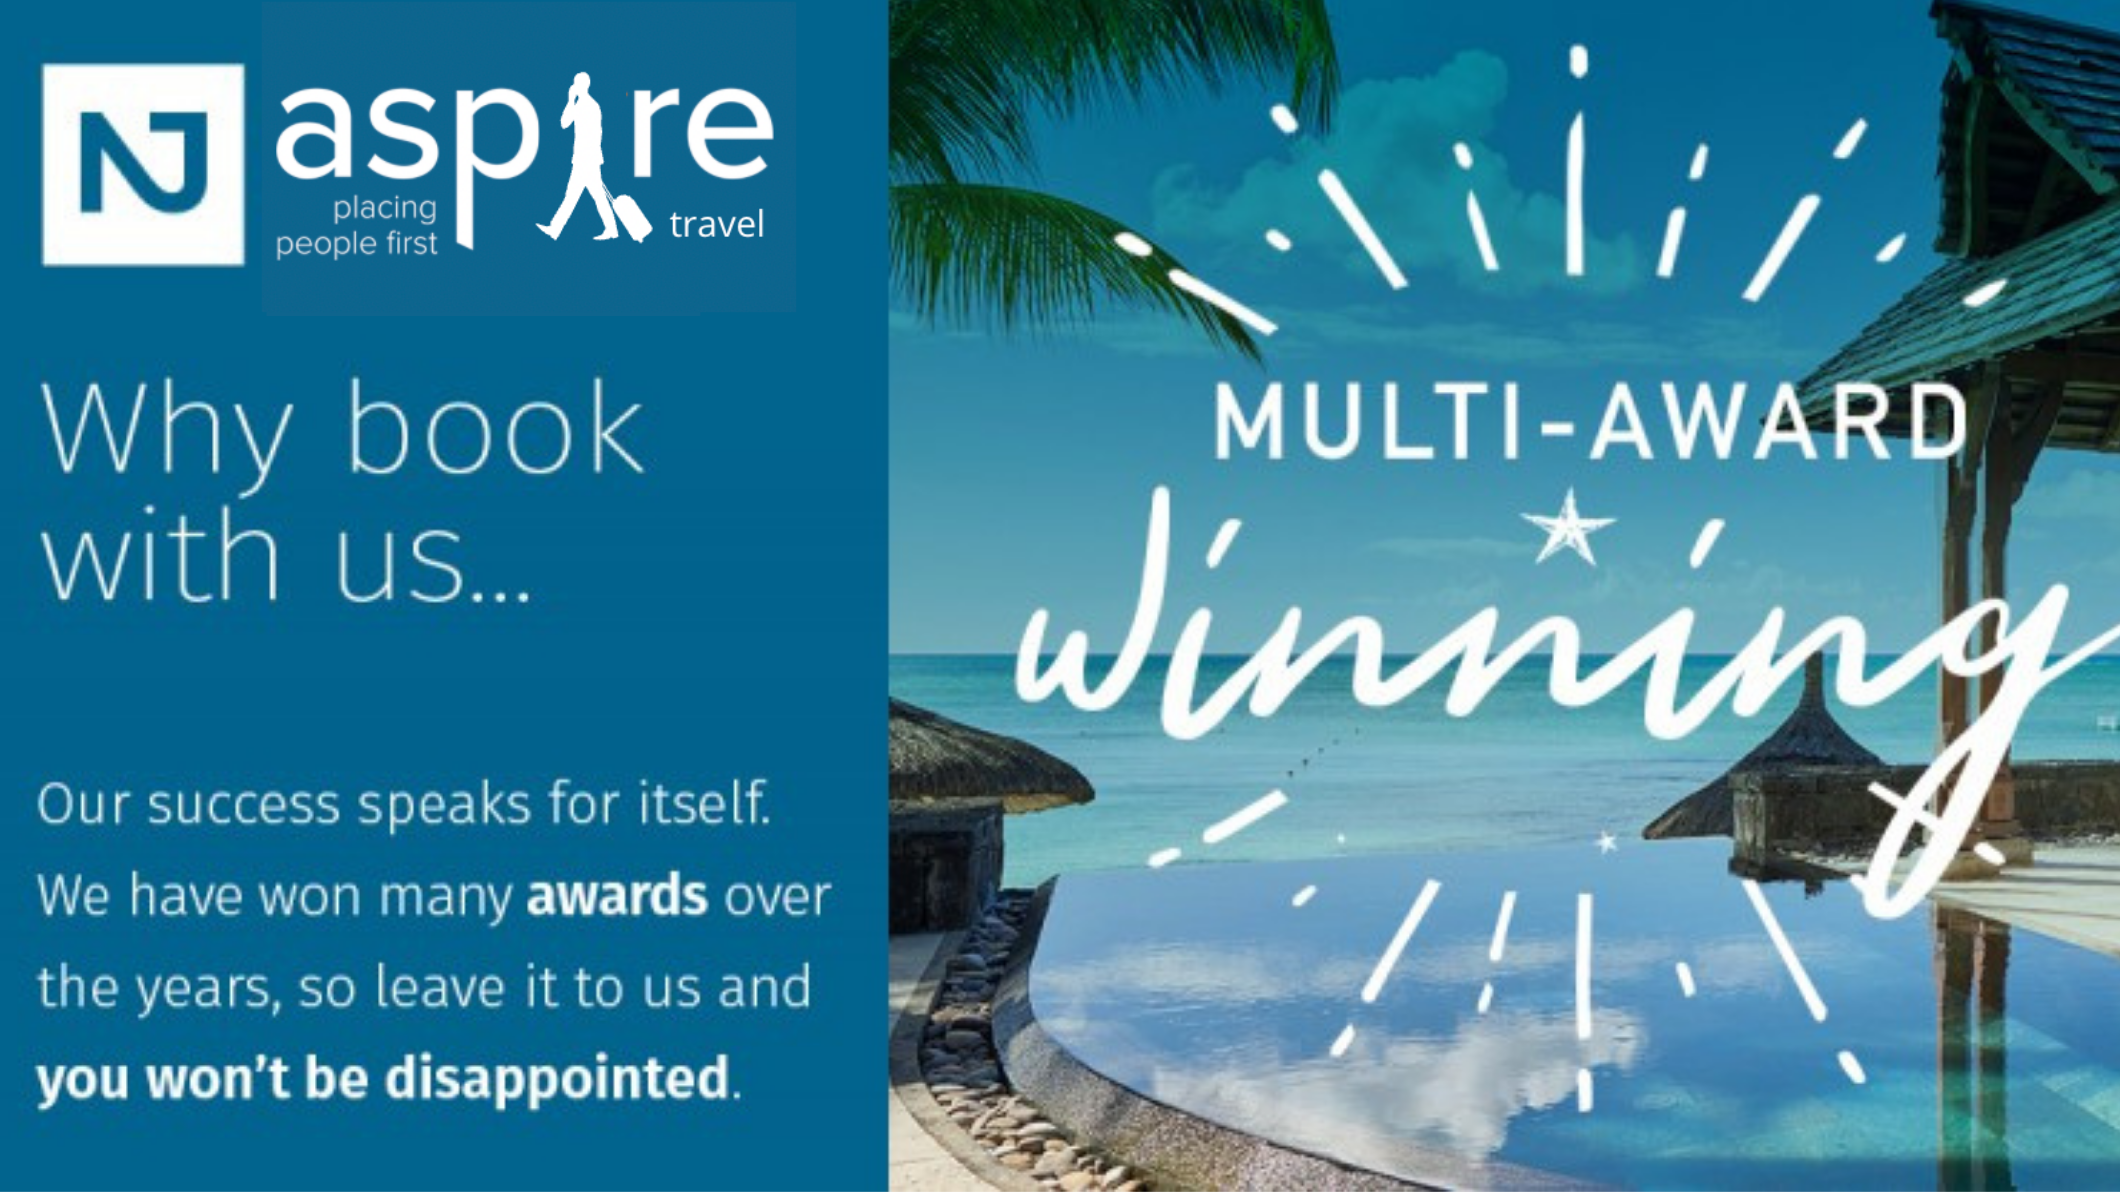 Aspire Cambridge announces the launch of Aspire Travel - Travel That Gives Back!